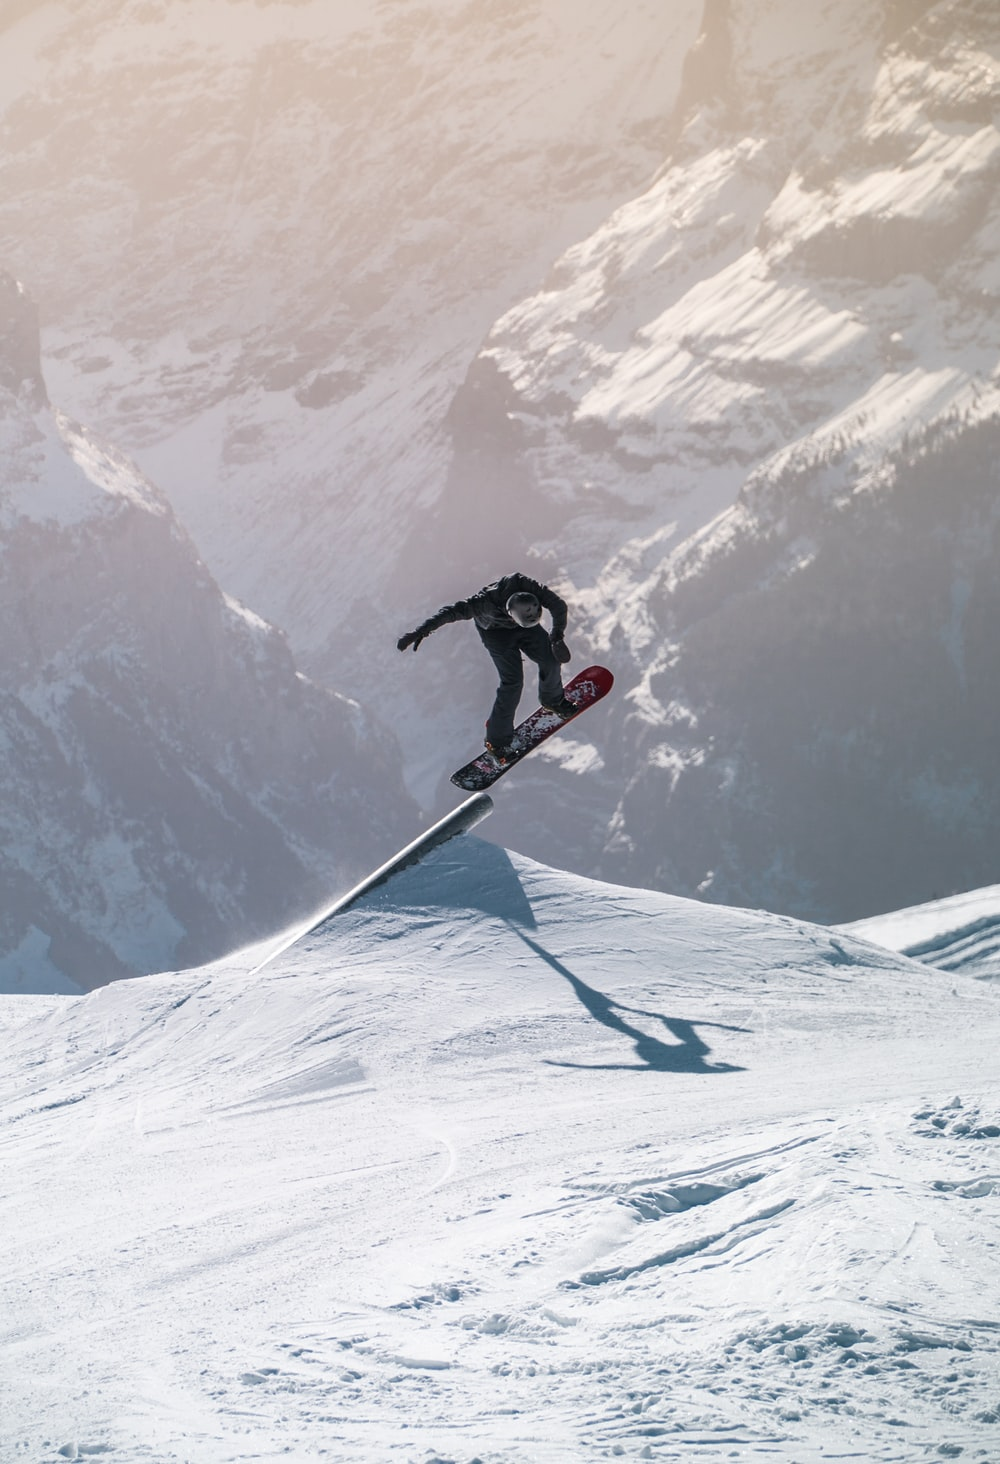 man in red jacket and black pants riding on ski blades on snow covered mountain during